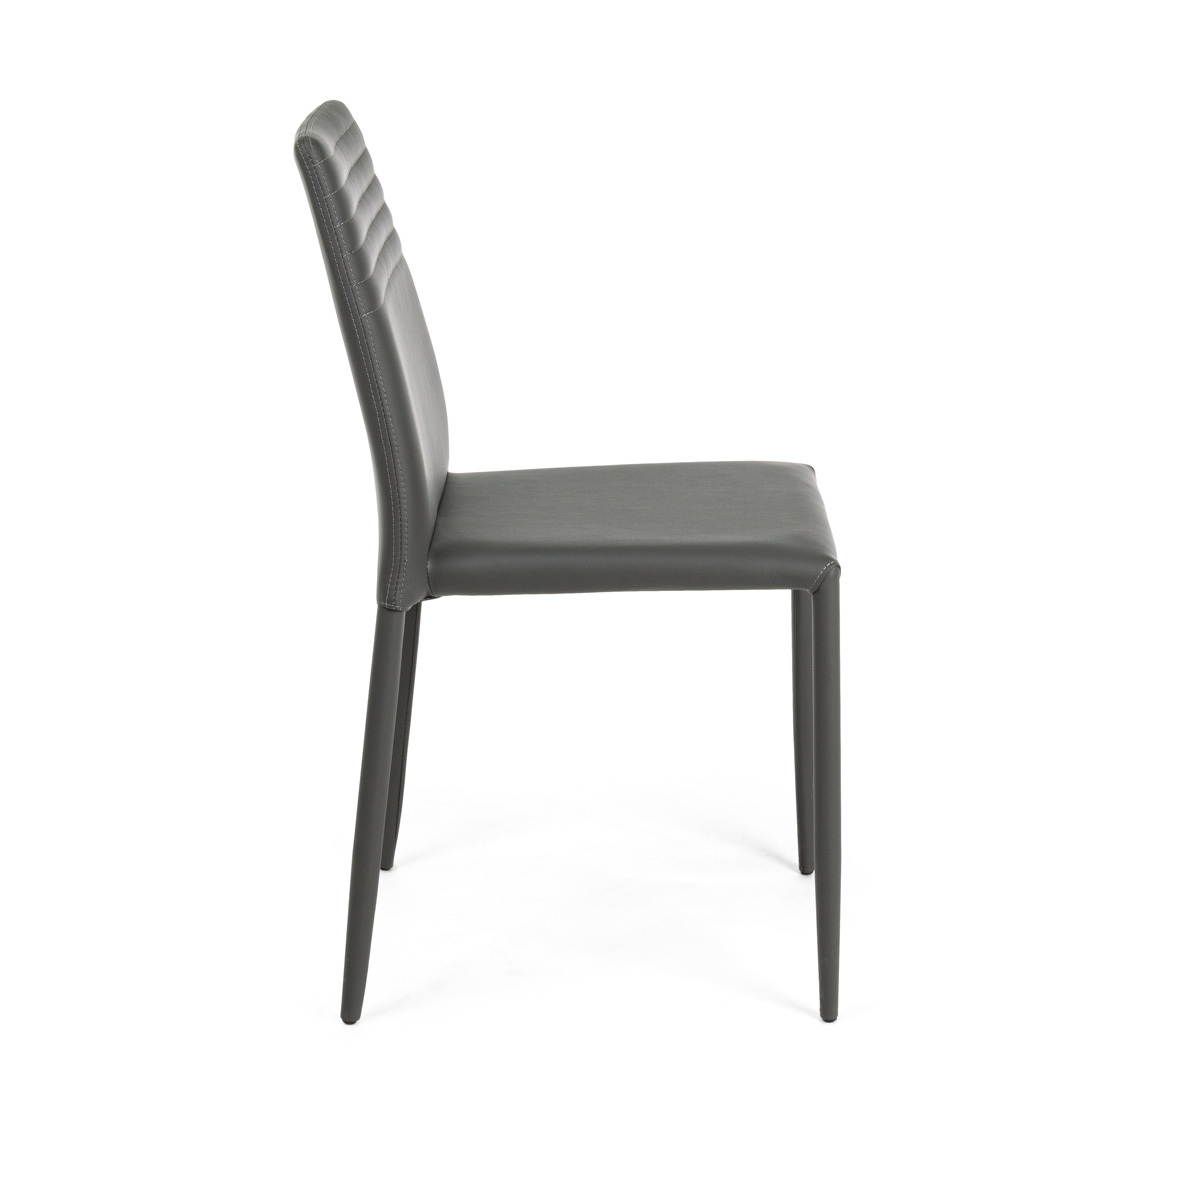 Photos 2: Bizzotto Chair in metal and eco-leather - anthracite 0731797